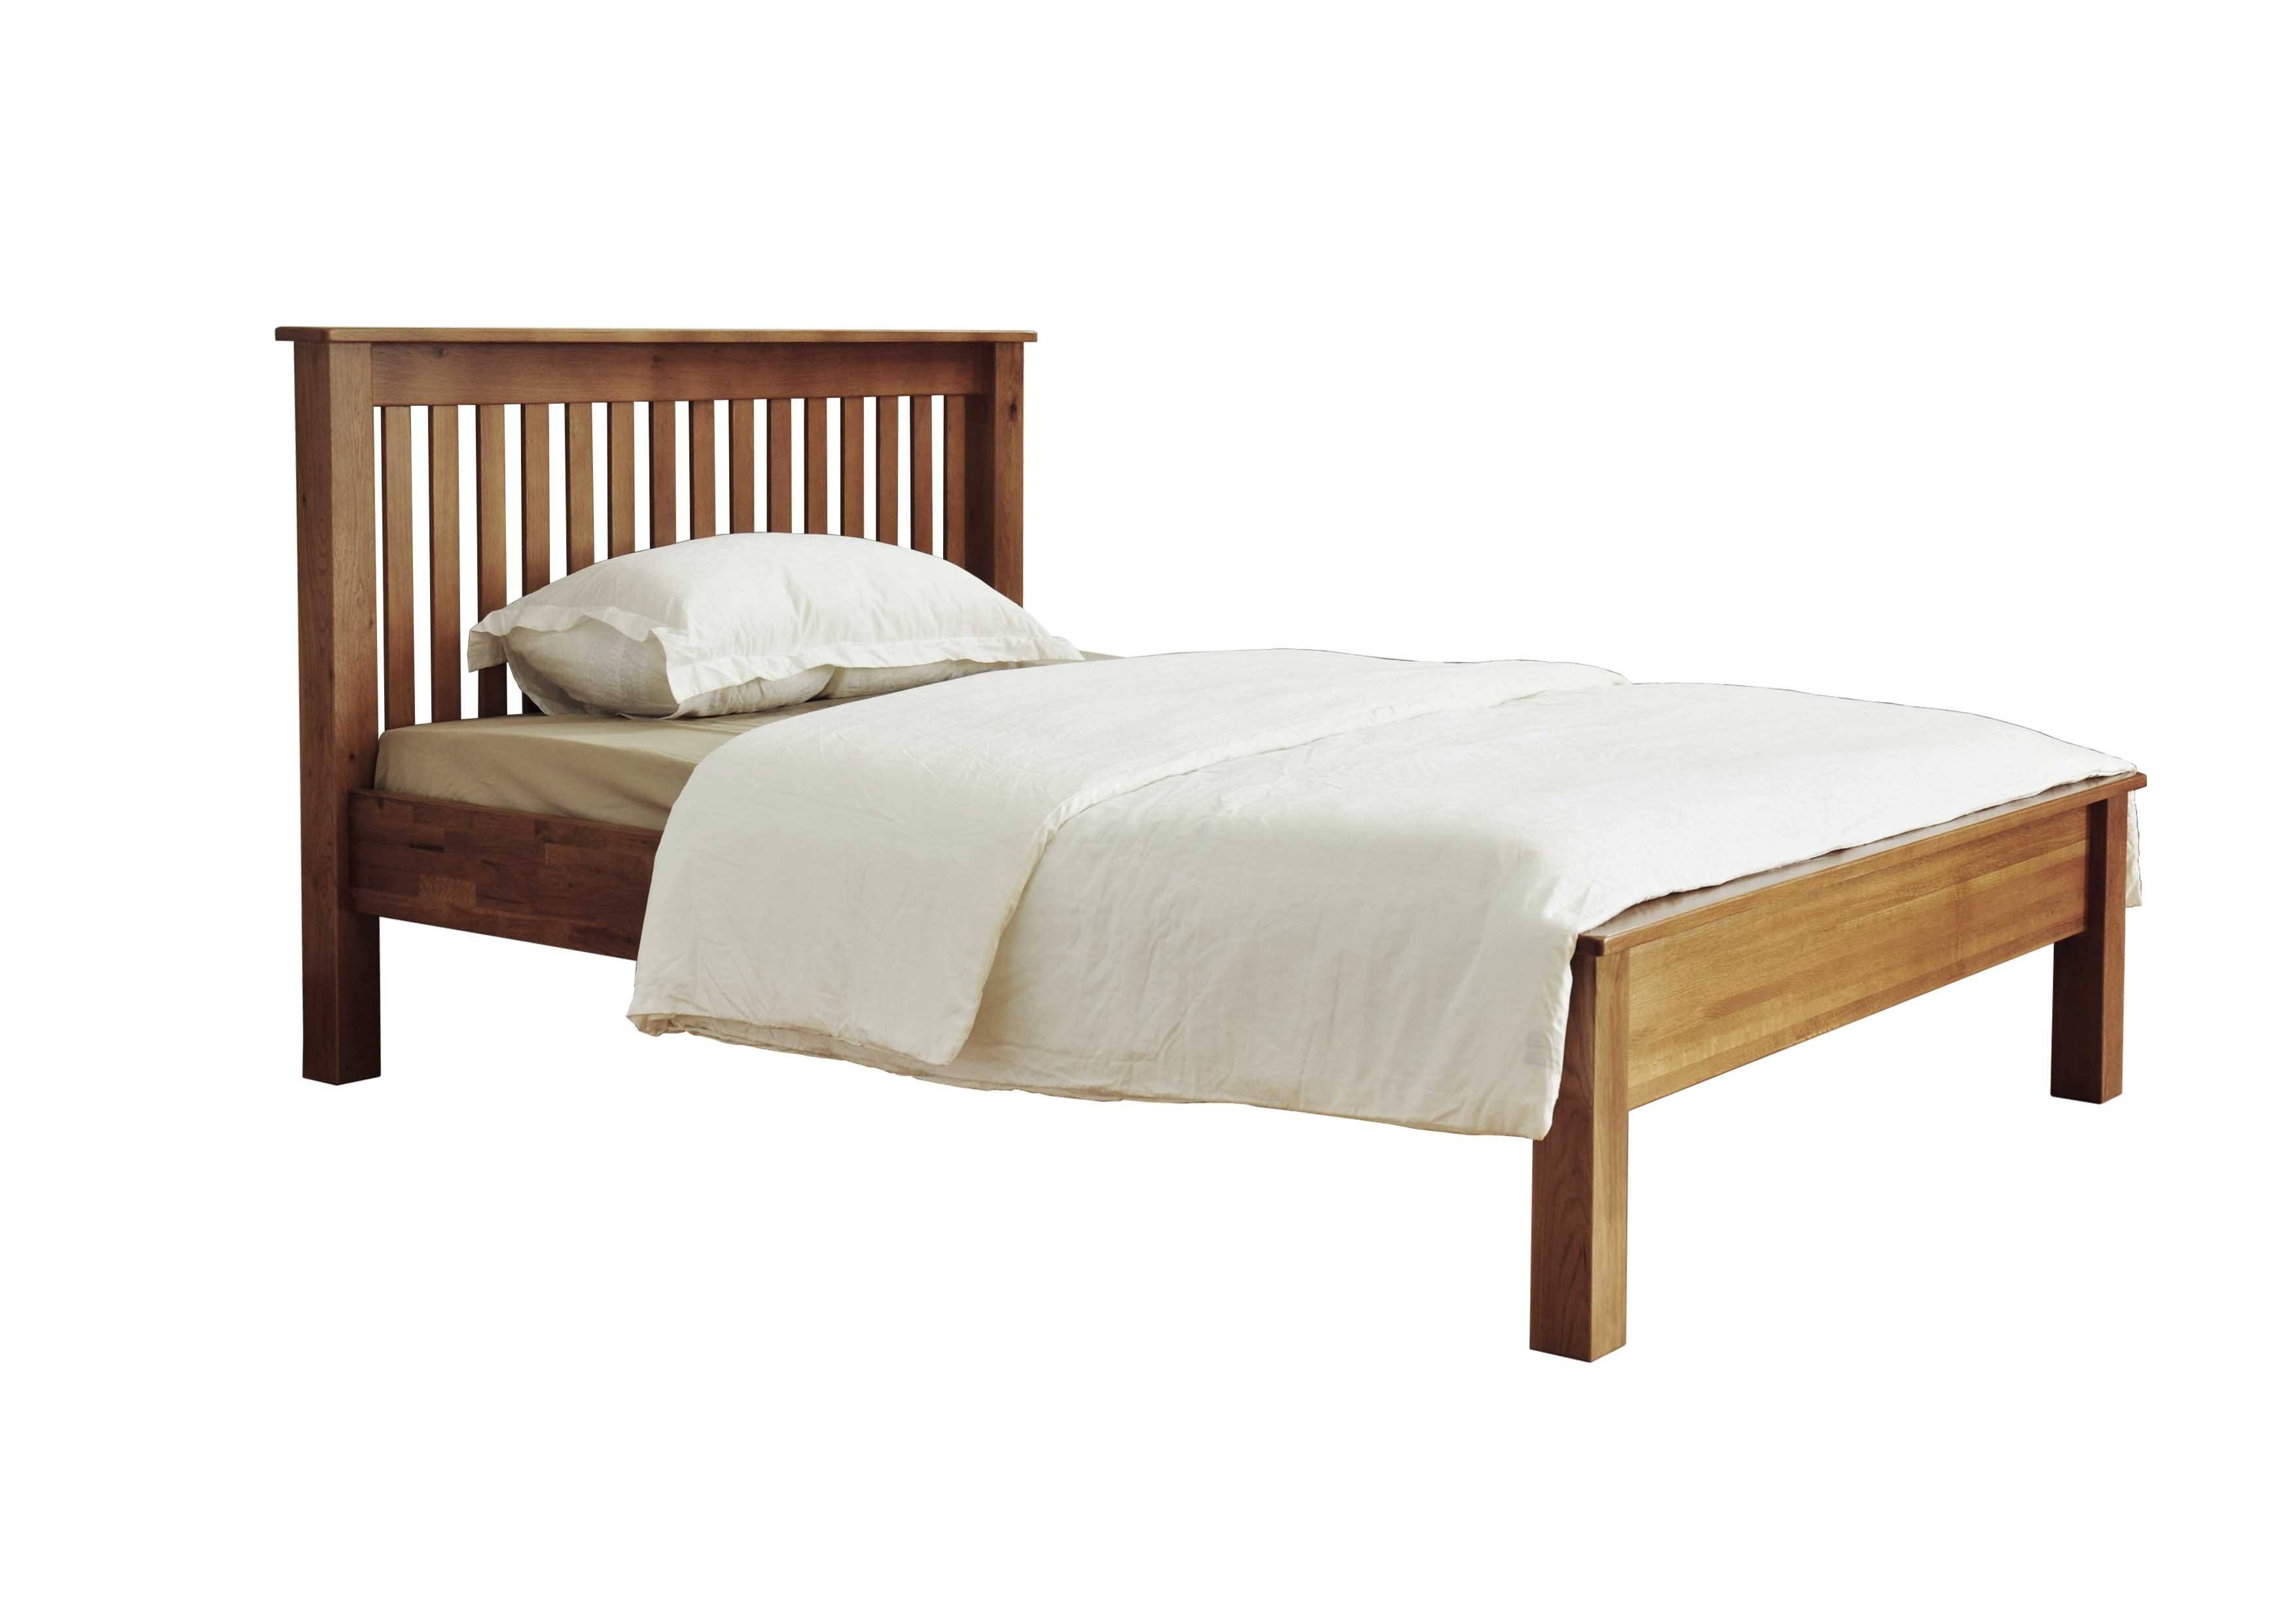 Fortune Wood Rustic Low Foot End Bed Frame